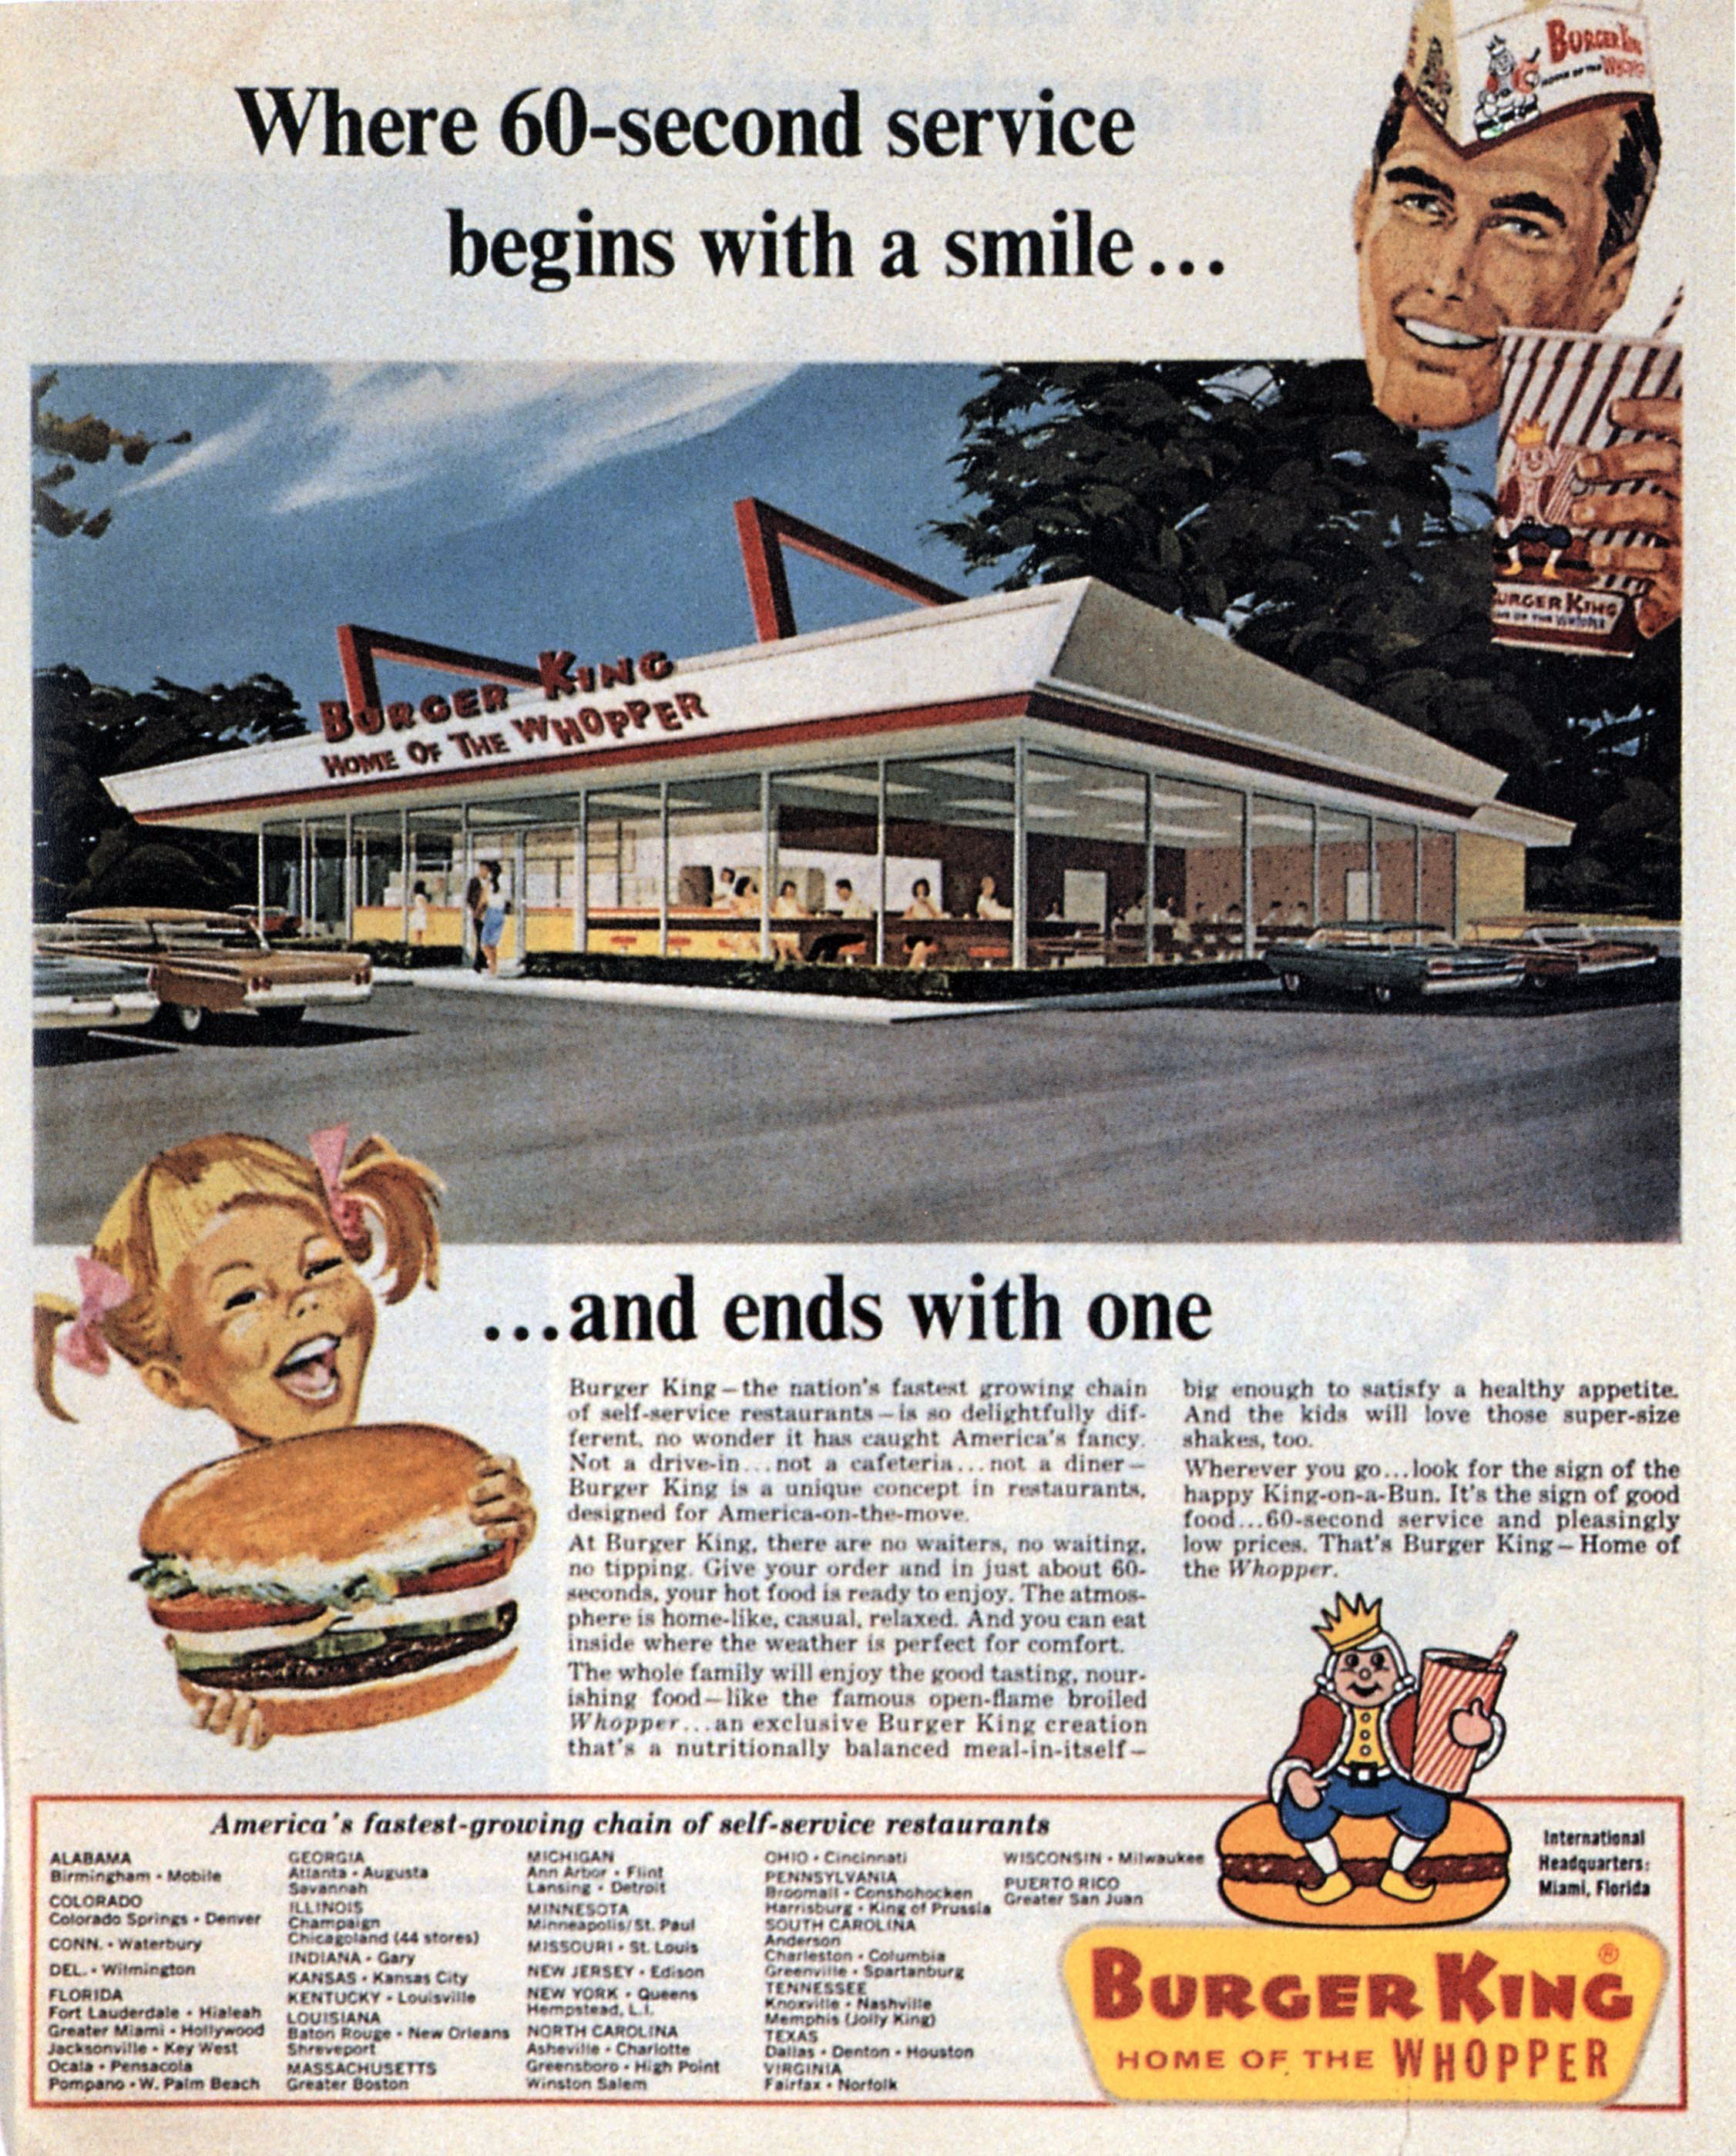 THE BURGER'S BEGINNINGS                                                                              Burger King was born in Miami, Florida when James McLamore and David Edgerton opened the company's first restaurant in 1954. Today, Burger King says it has roughly 12,000 locations worldwide.